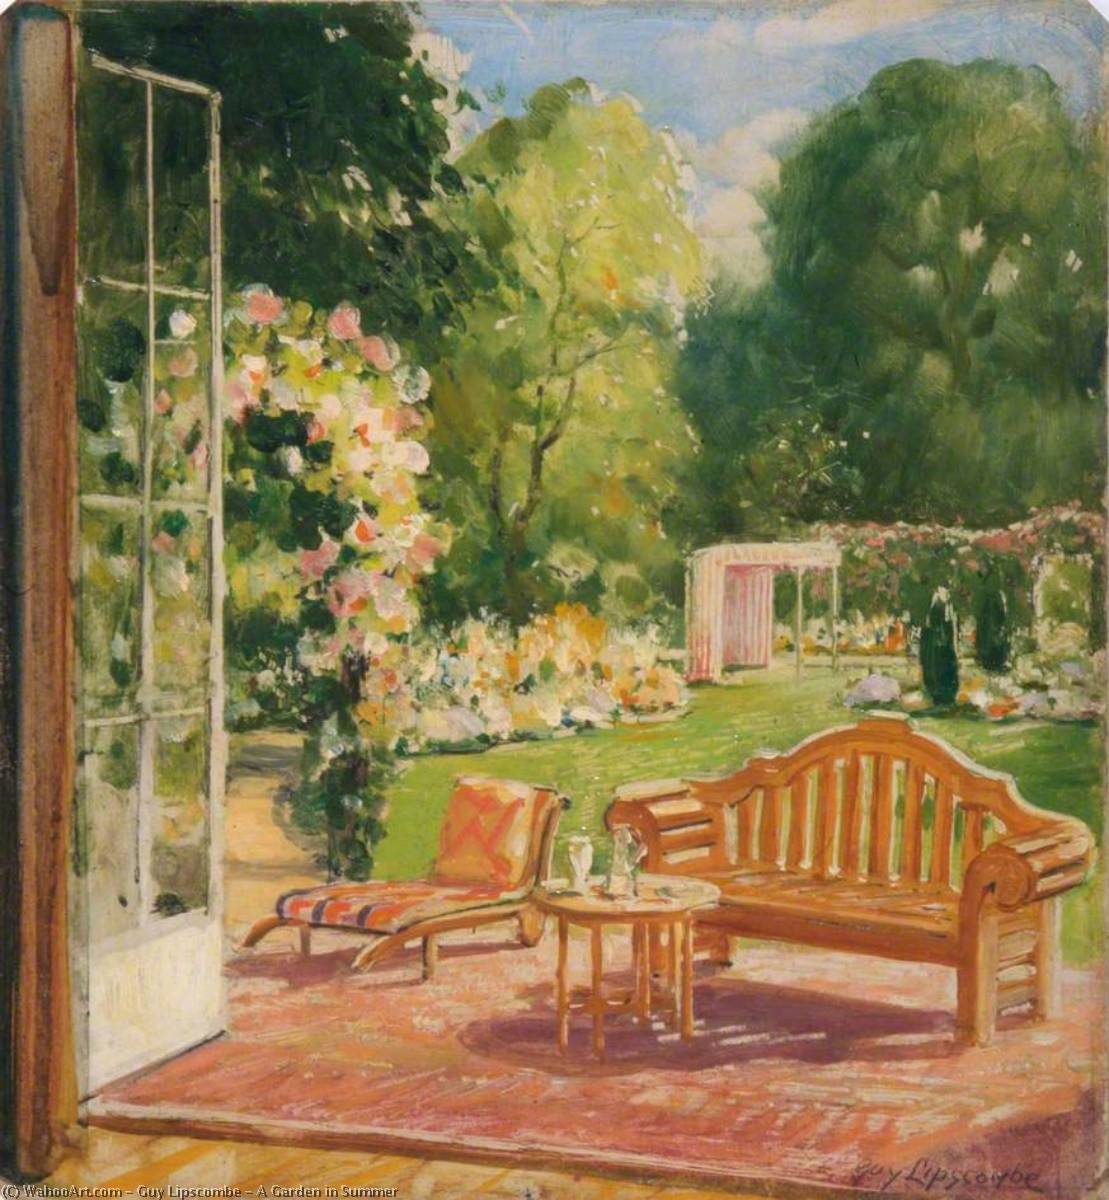 A Garden in Summer, 1930 by Guy Lipscombe | Oil Painting | WahooArt.com